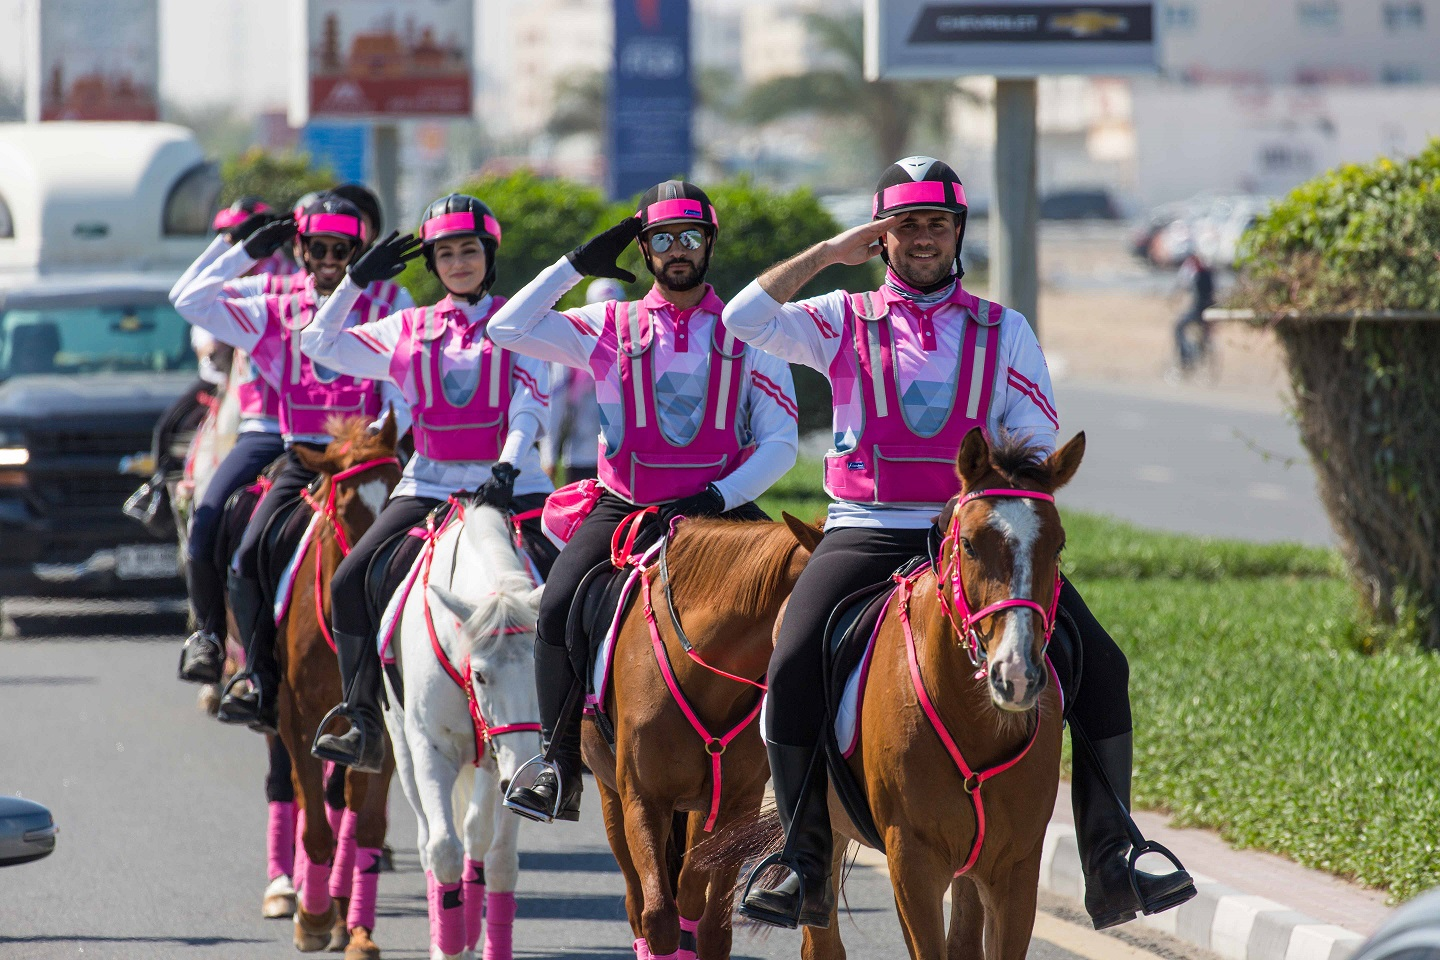 10 breast cancer cases revealed by pink caravan ride 2017 d - copy